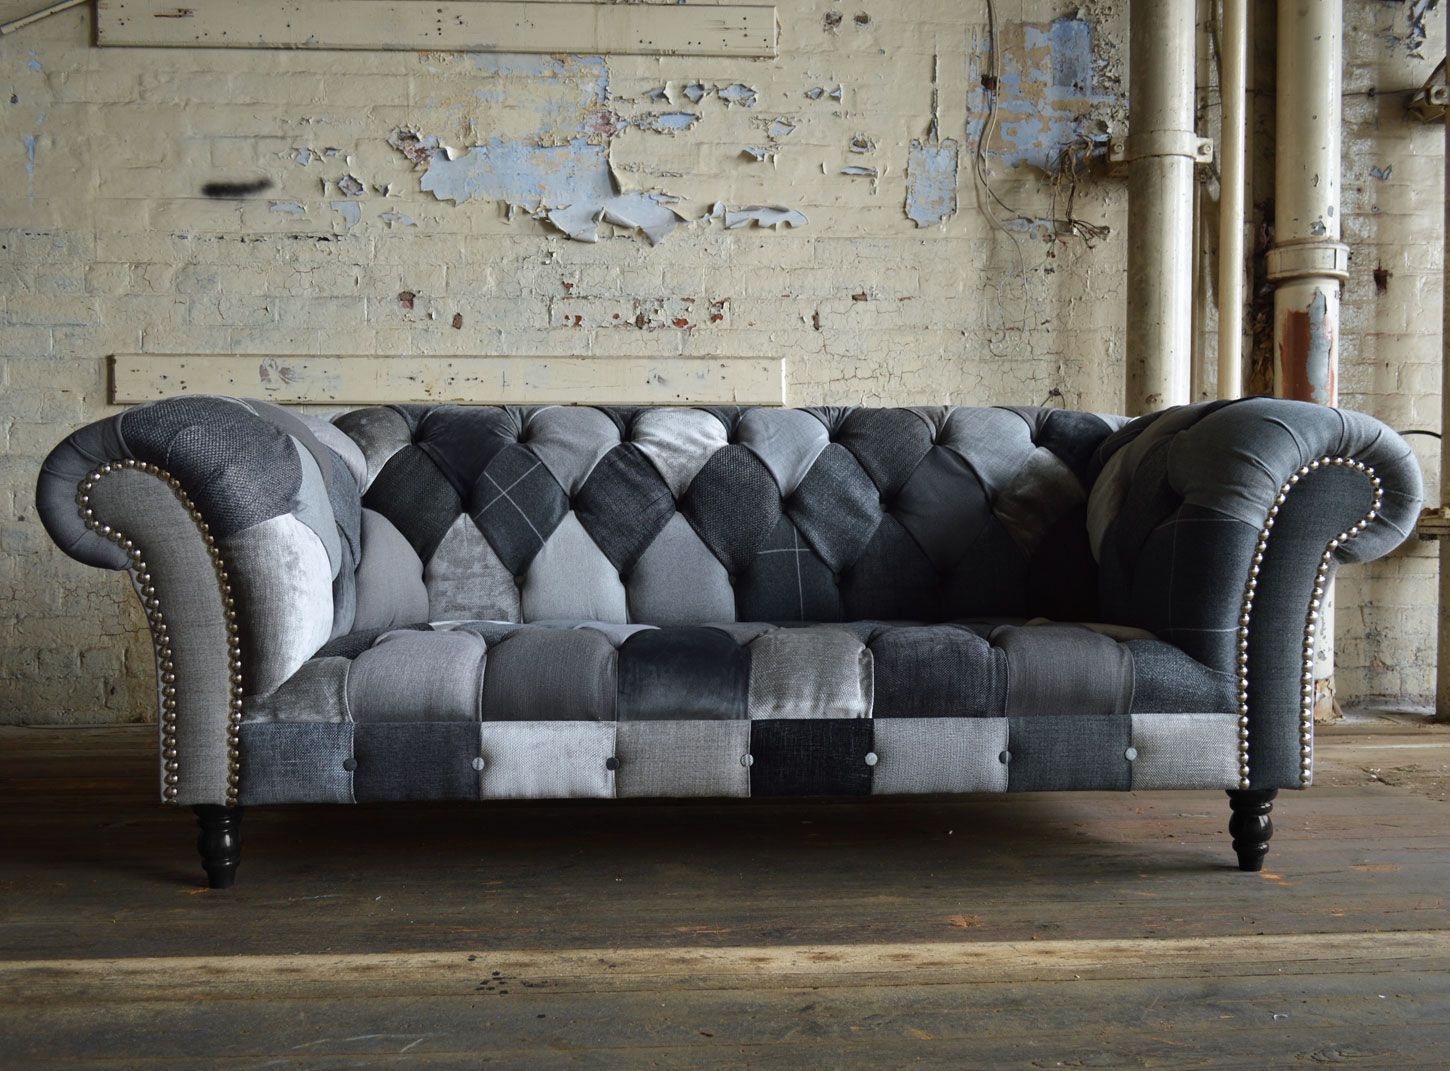 Modern British And Handmade Bold Ghost Patchwork Chesterfield Sofa Totally Unique Fabric 3 Seater